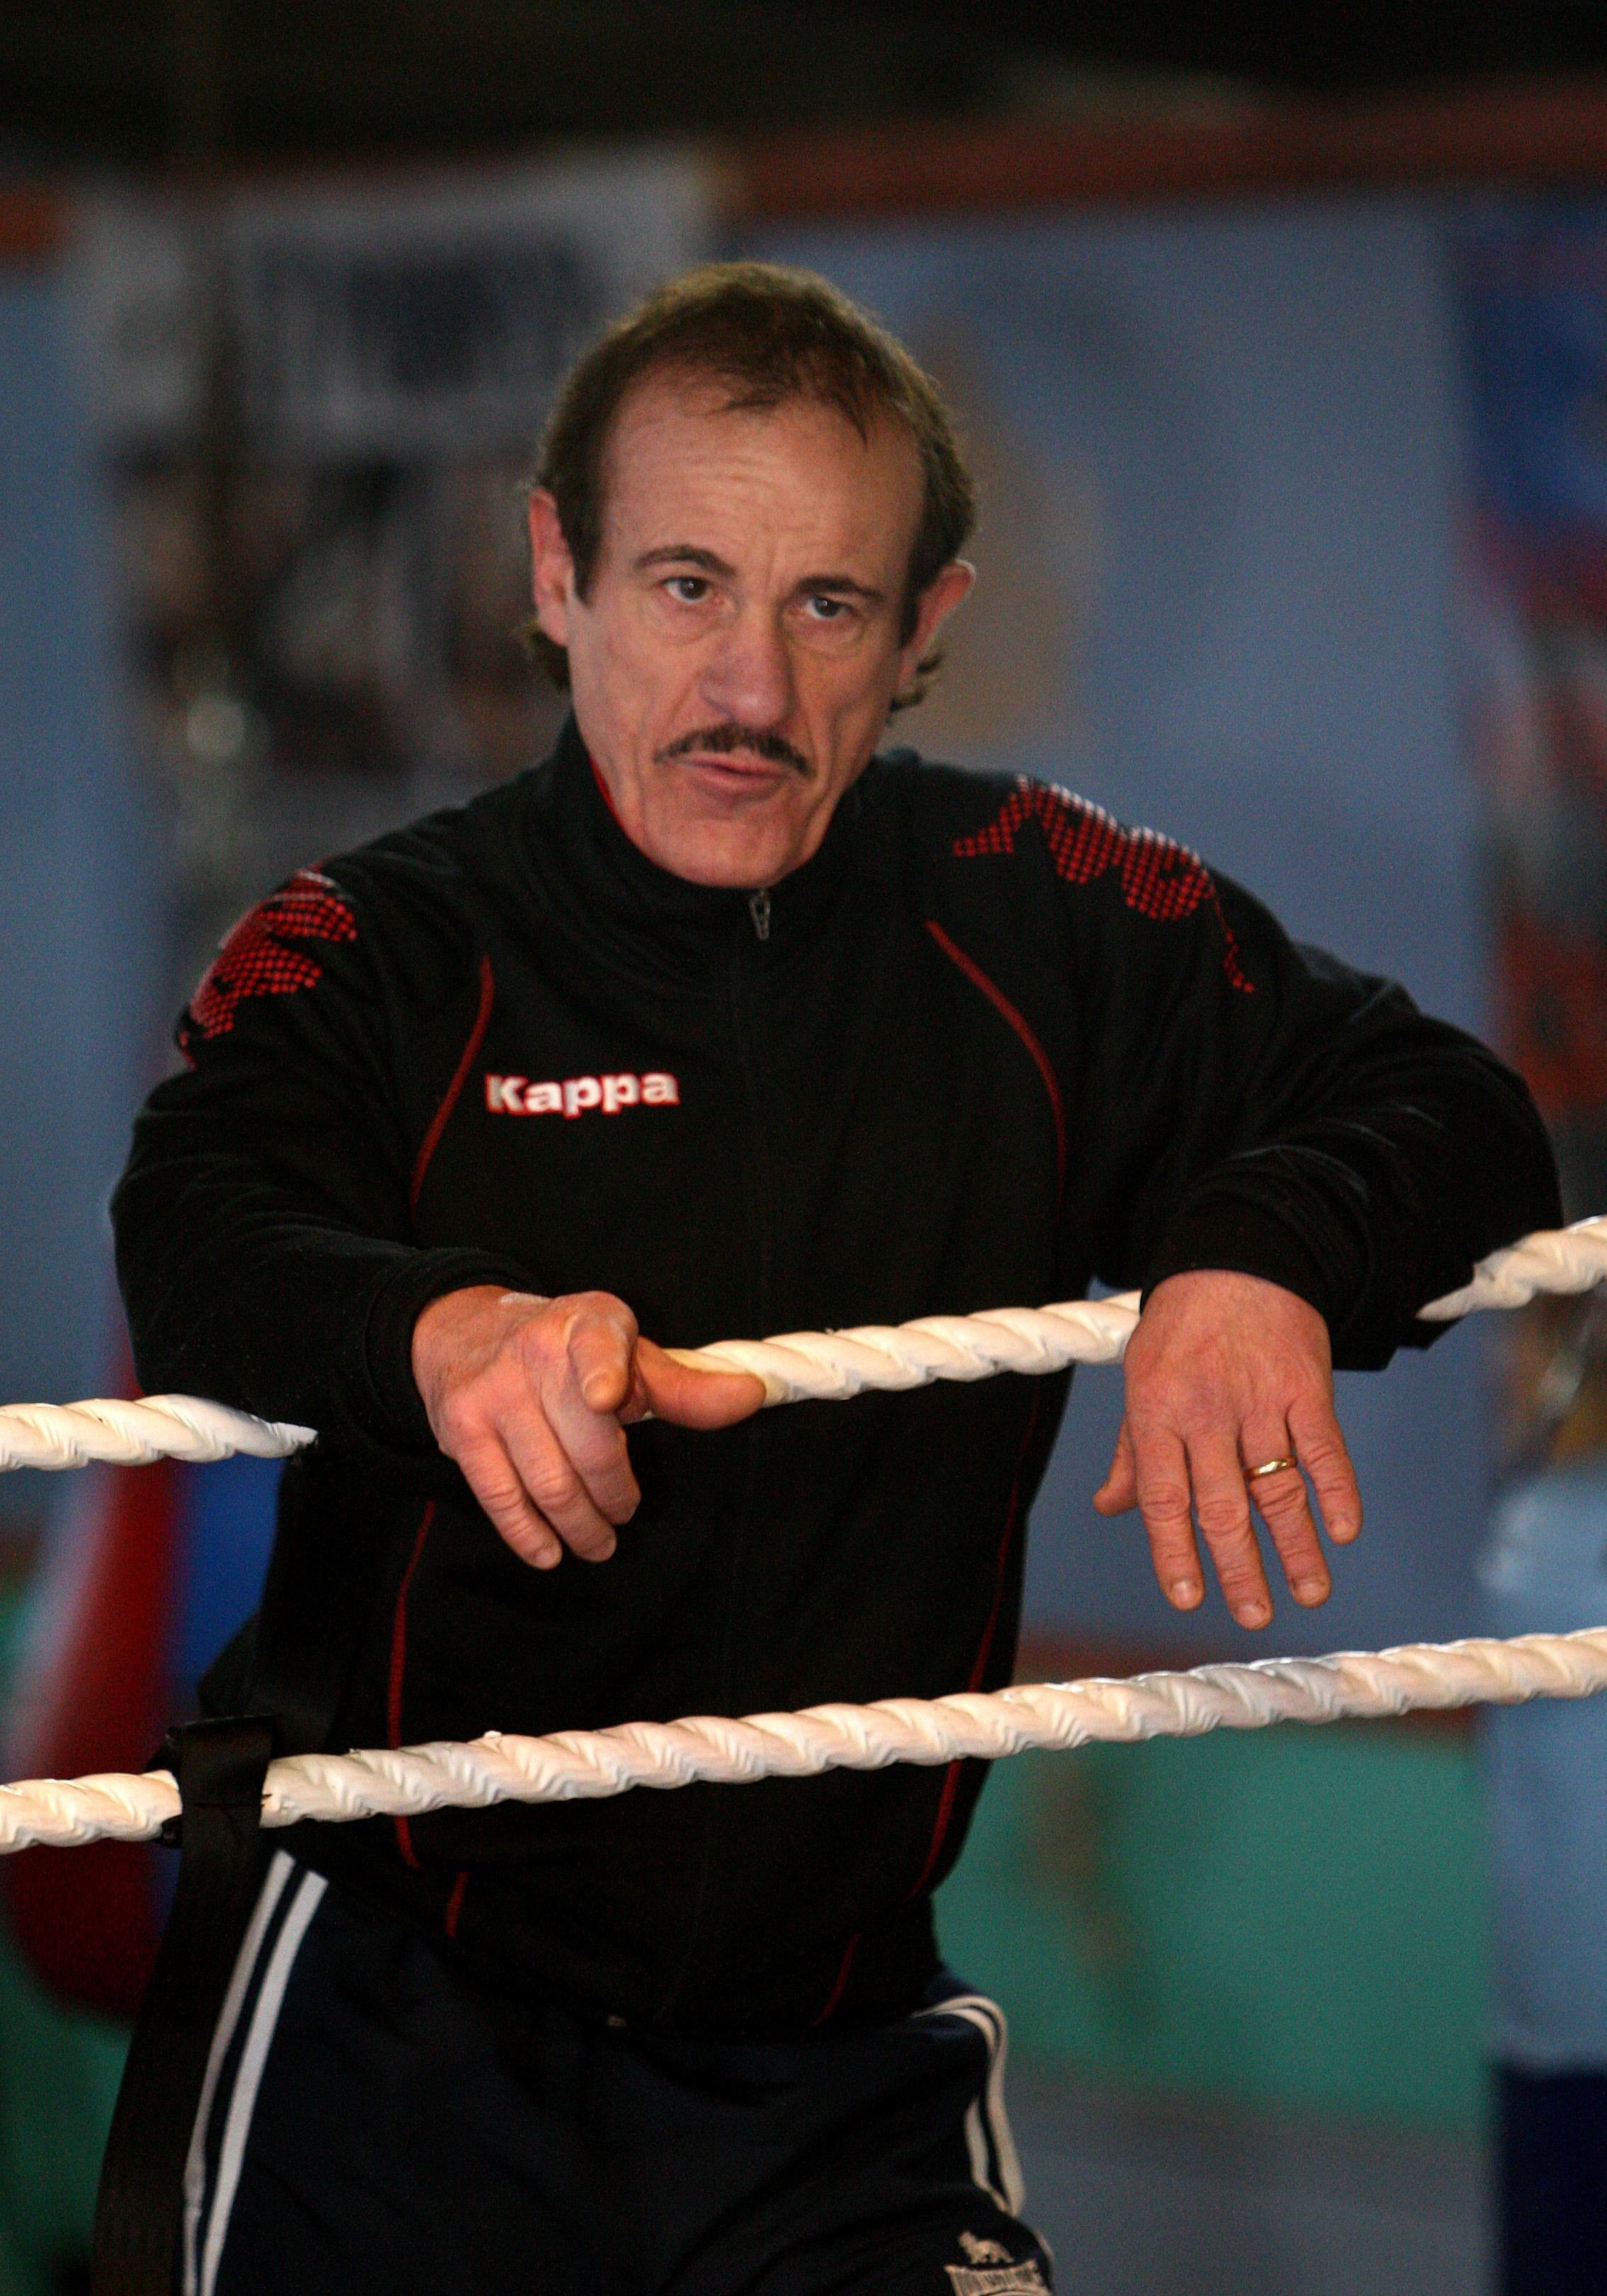 Enzo Calzaghe trained son Joe as well as some other huge names in boxing